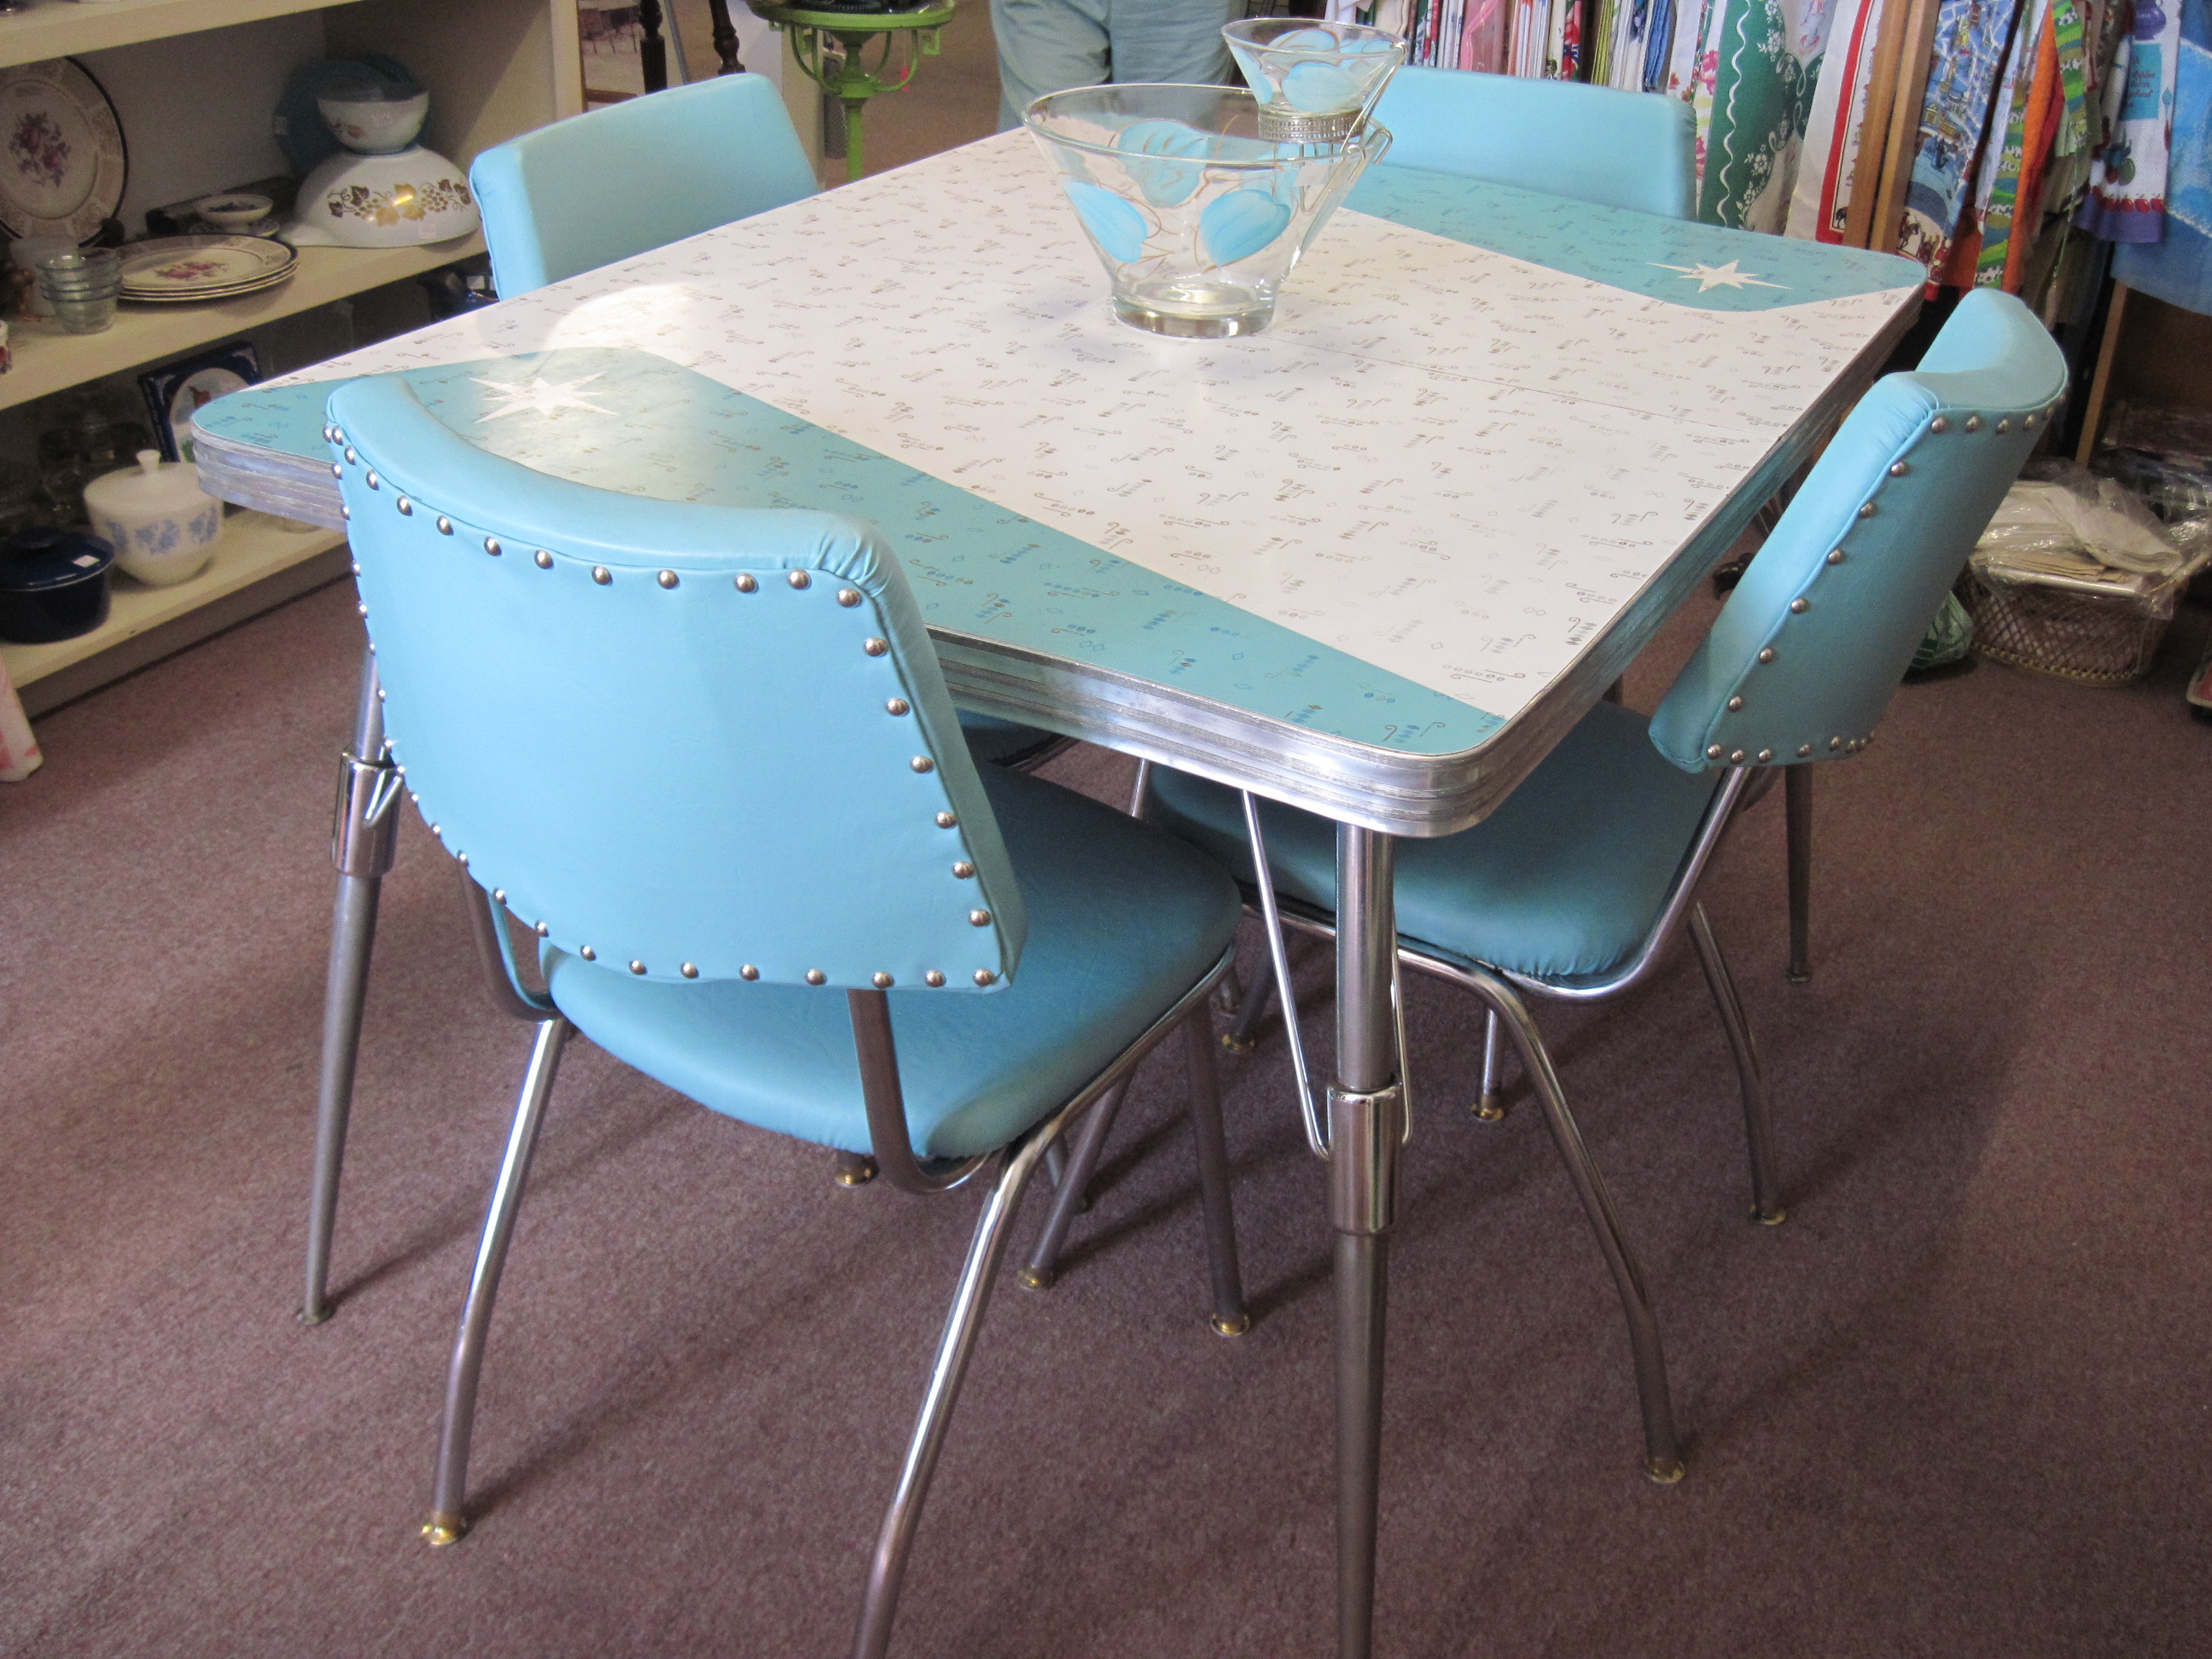 Retro vintage formica table and chairs fabfindsblog - Table cuisine formica annee 50 ...